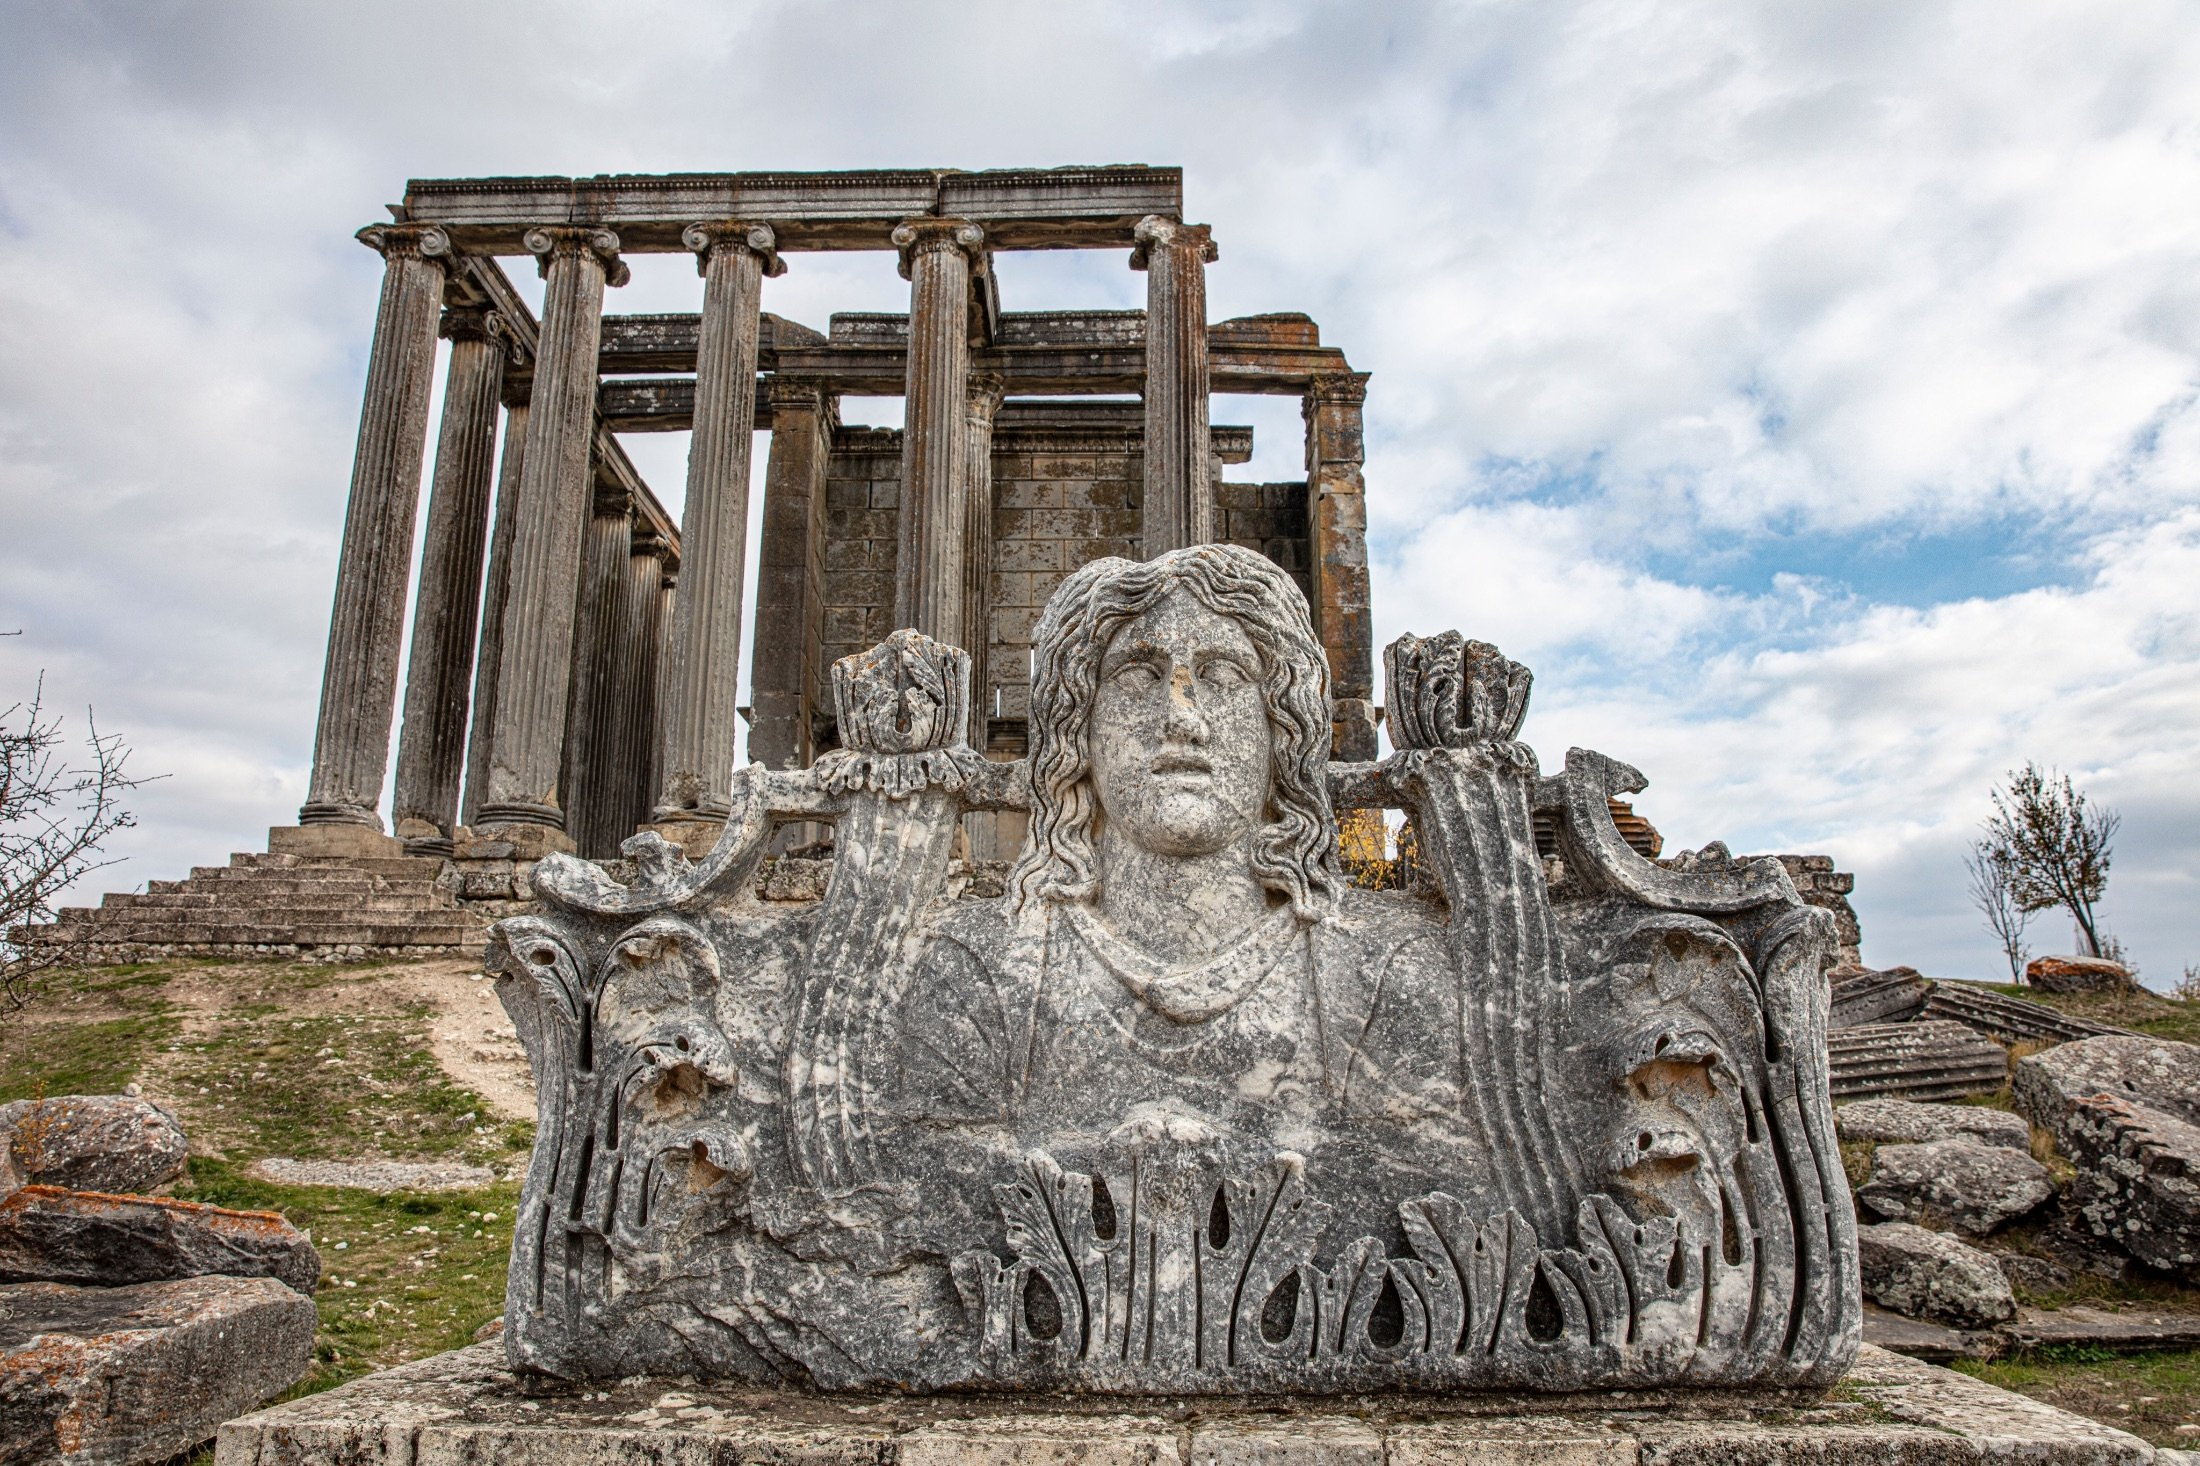 A sculpture can be seen with the ruins of the Zeus Temple in the background at the ancient city of Aizanoi in Kütahya, Turkey. (Shutterstock Photo)